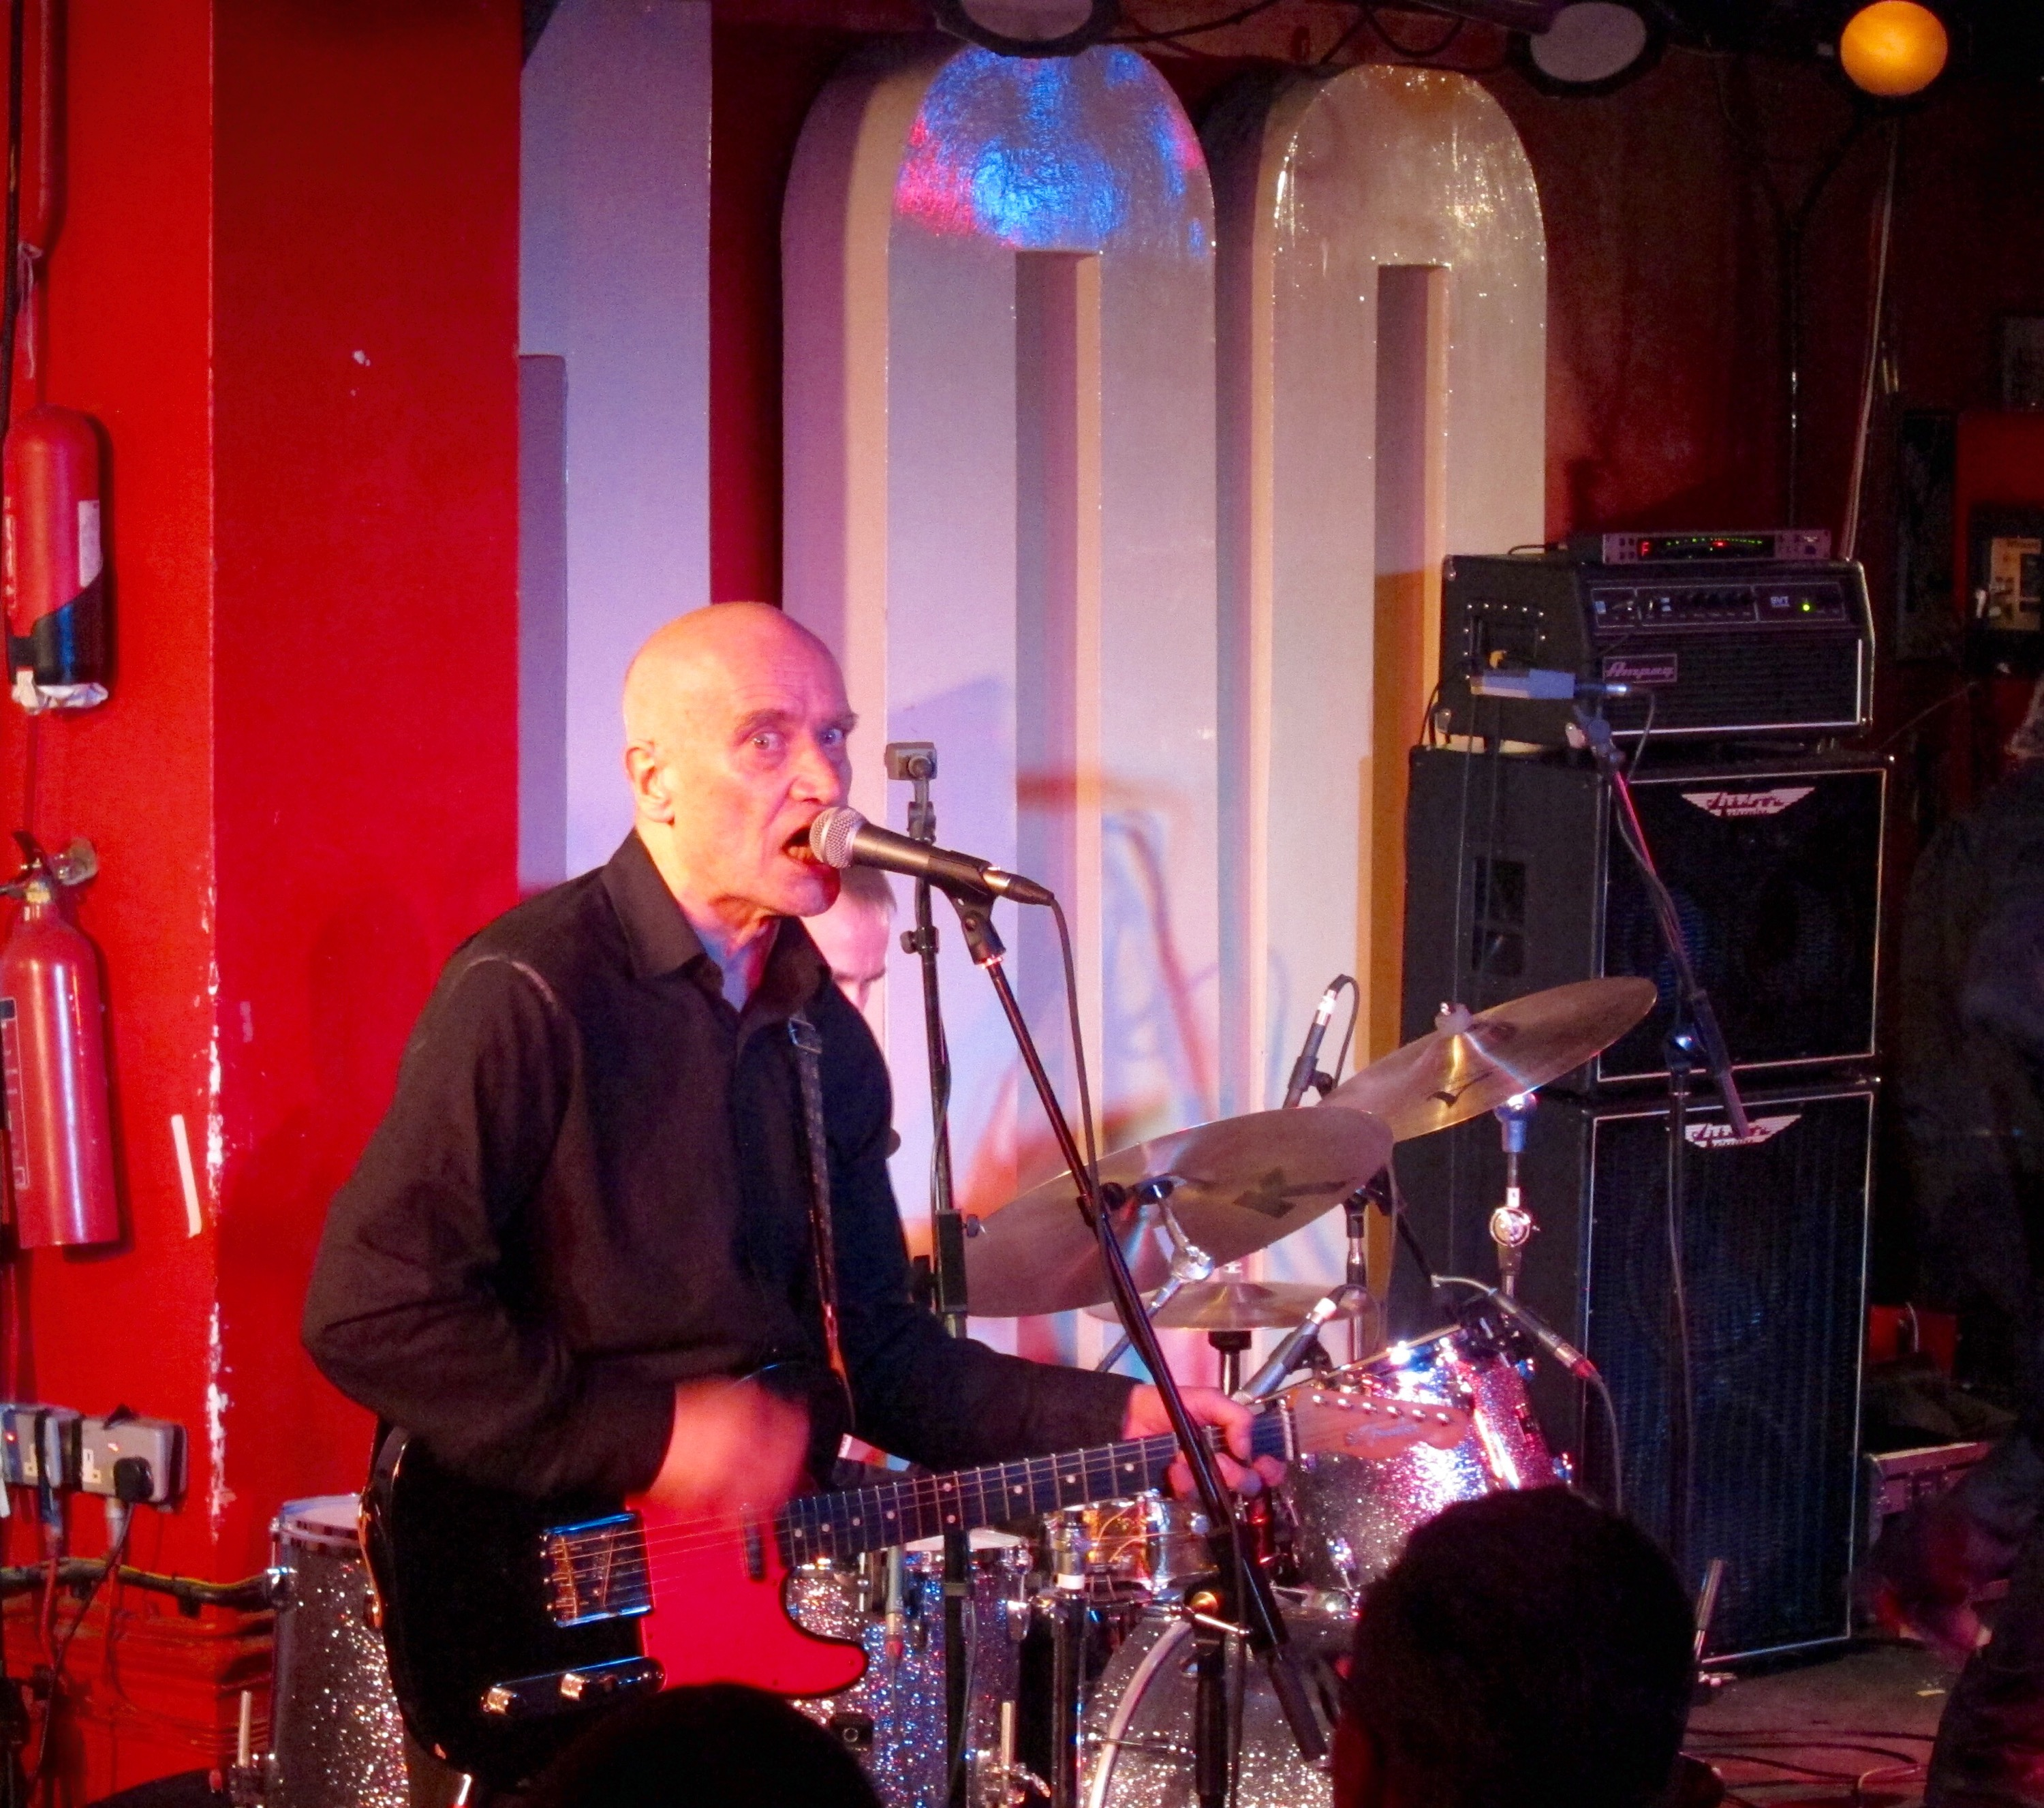 Wilko Johnson at the 100 Club